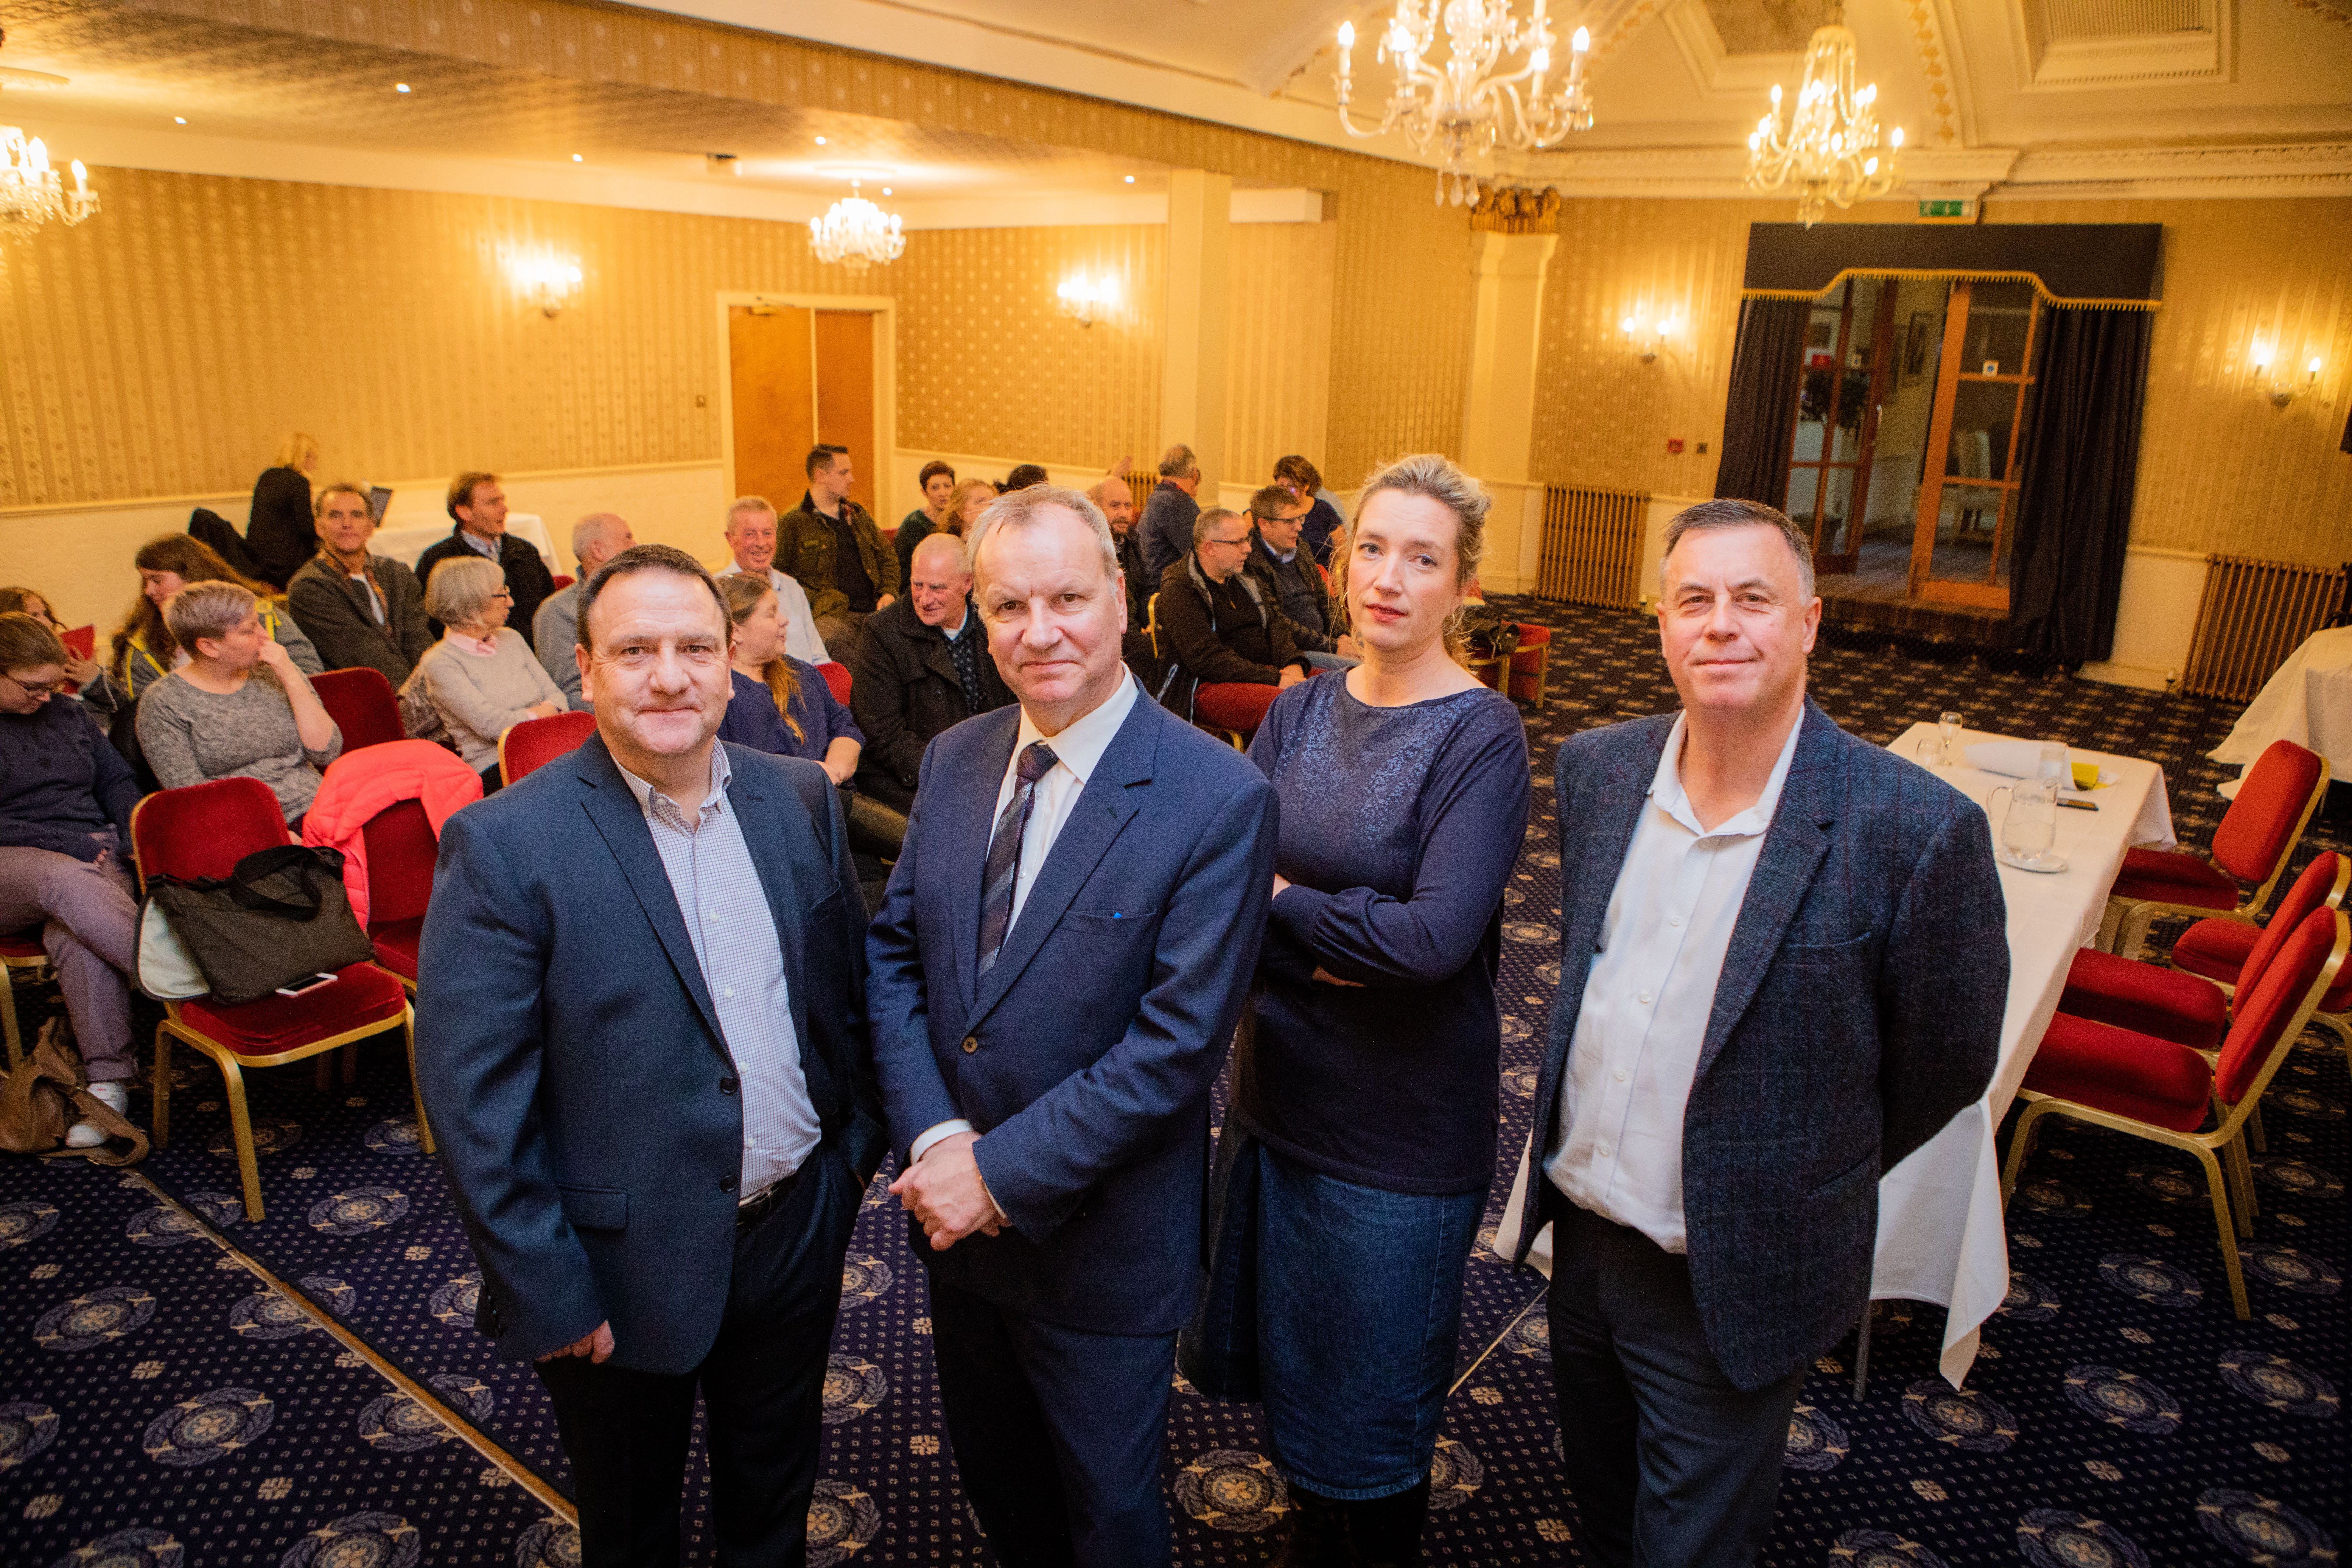 Speakers at a Save our Schools meeting, from left: Andy Charlton, chairman of Pitlochry High School parent council, Pete Wishart, Perth and North Perthshire MP, Anna Brocklehurst, chairwoman of Grandtully Primary School parent council and Councillor John Rebbeck.